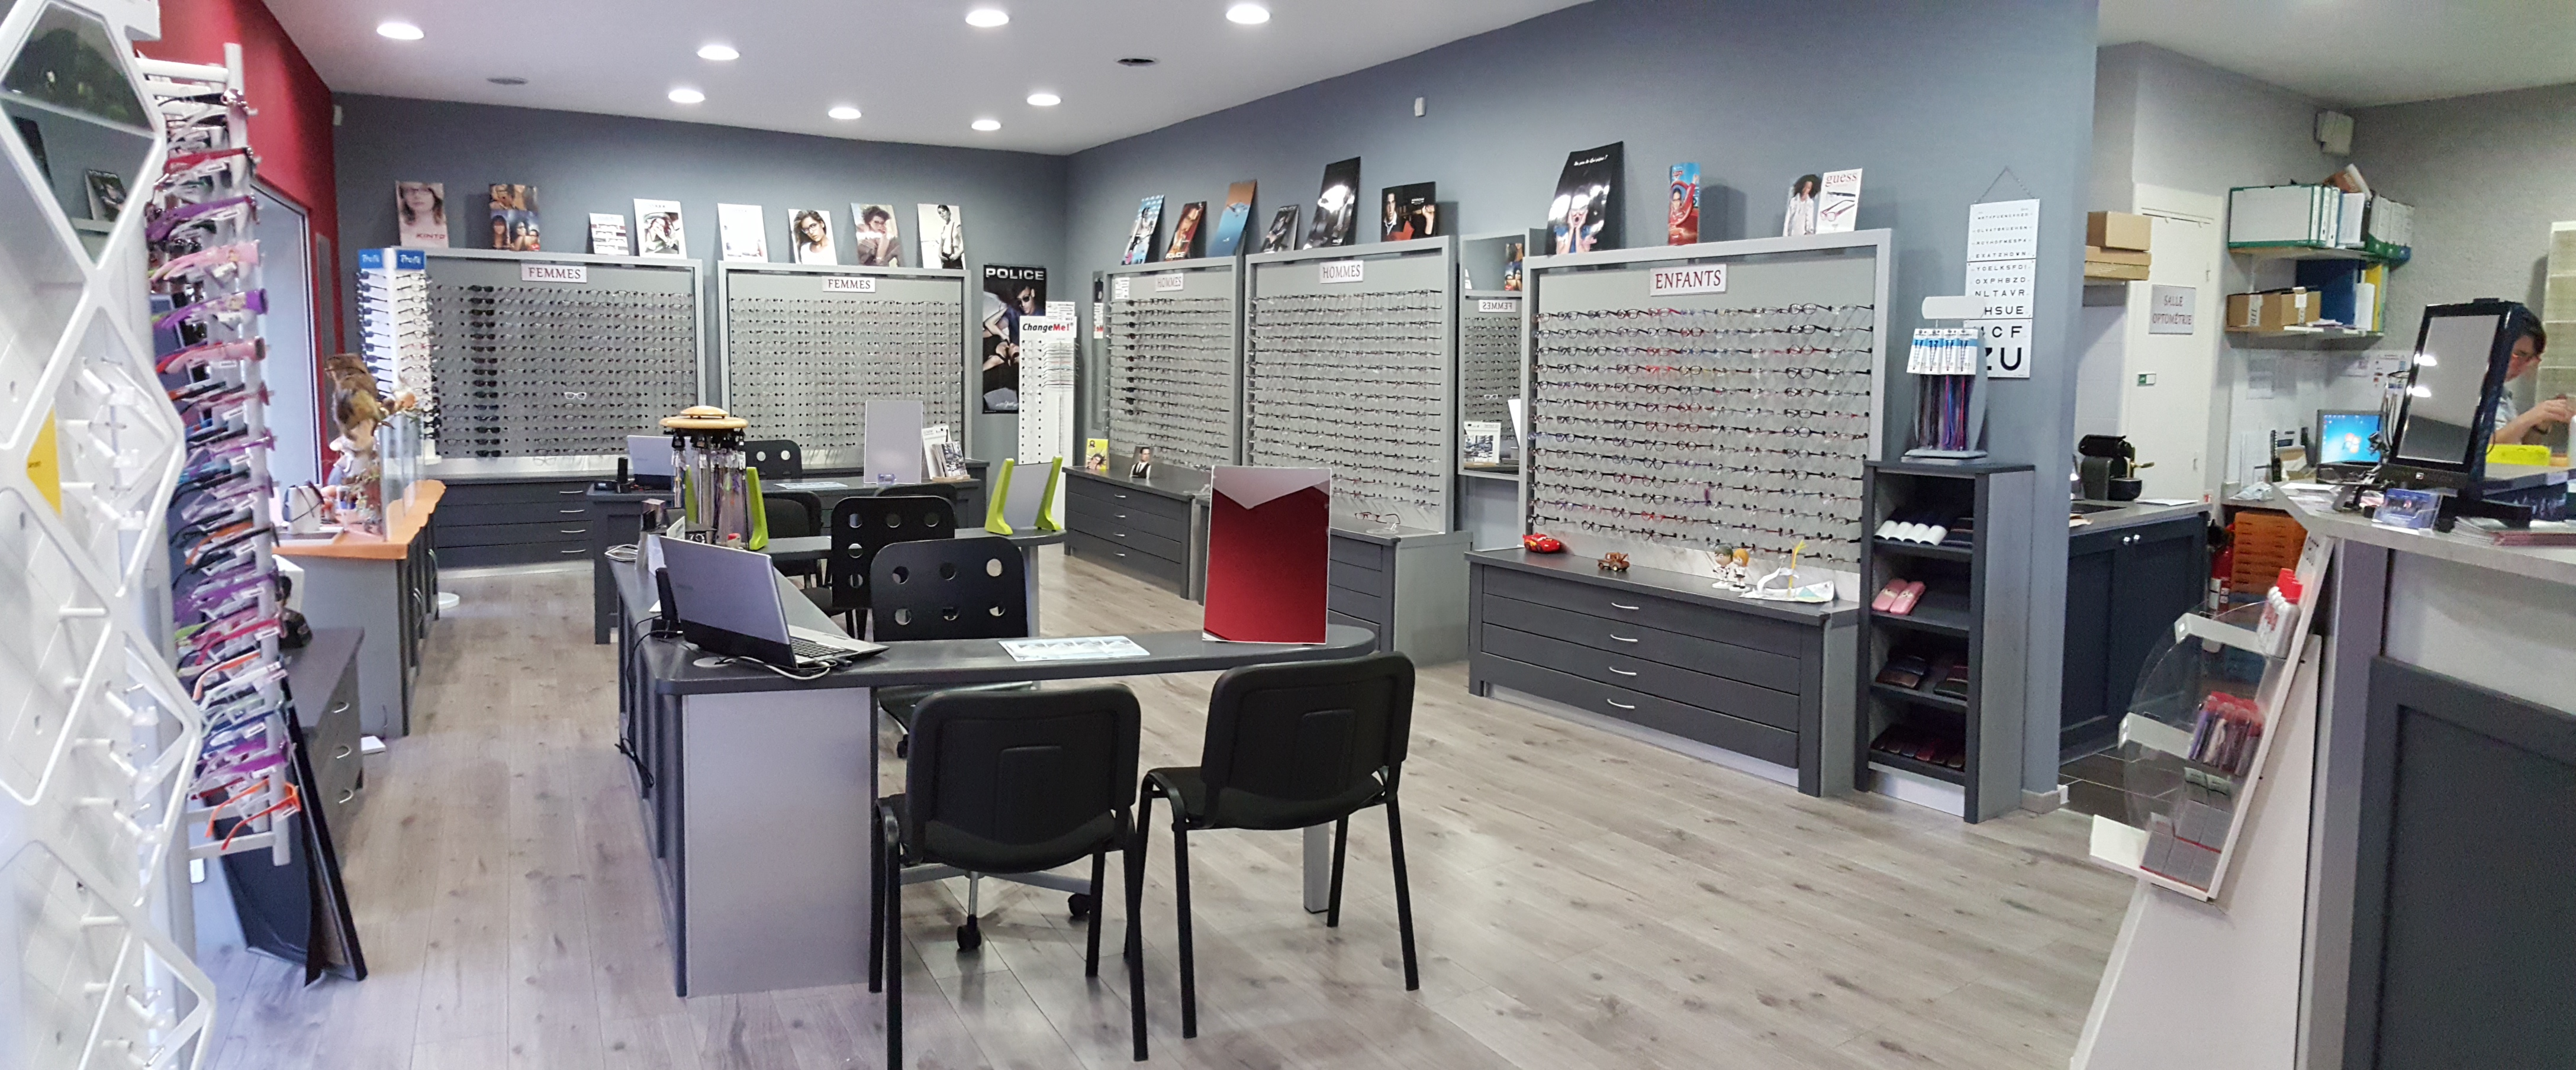 Opticien : LAUR'OPTIC, 26, boulevard Yvan Pelissier, 11590 CUXAC D'AUDE